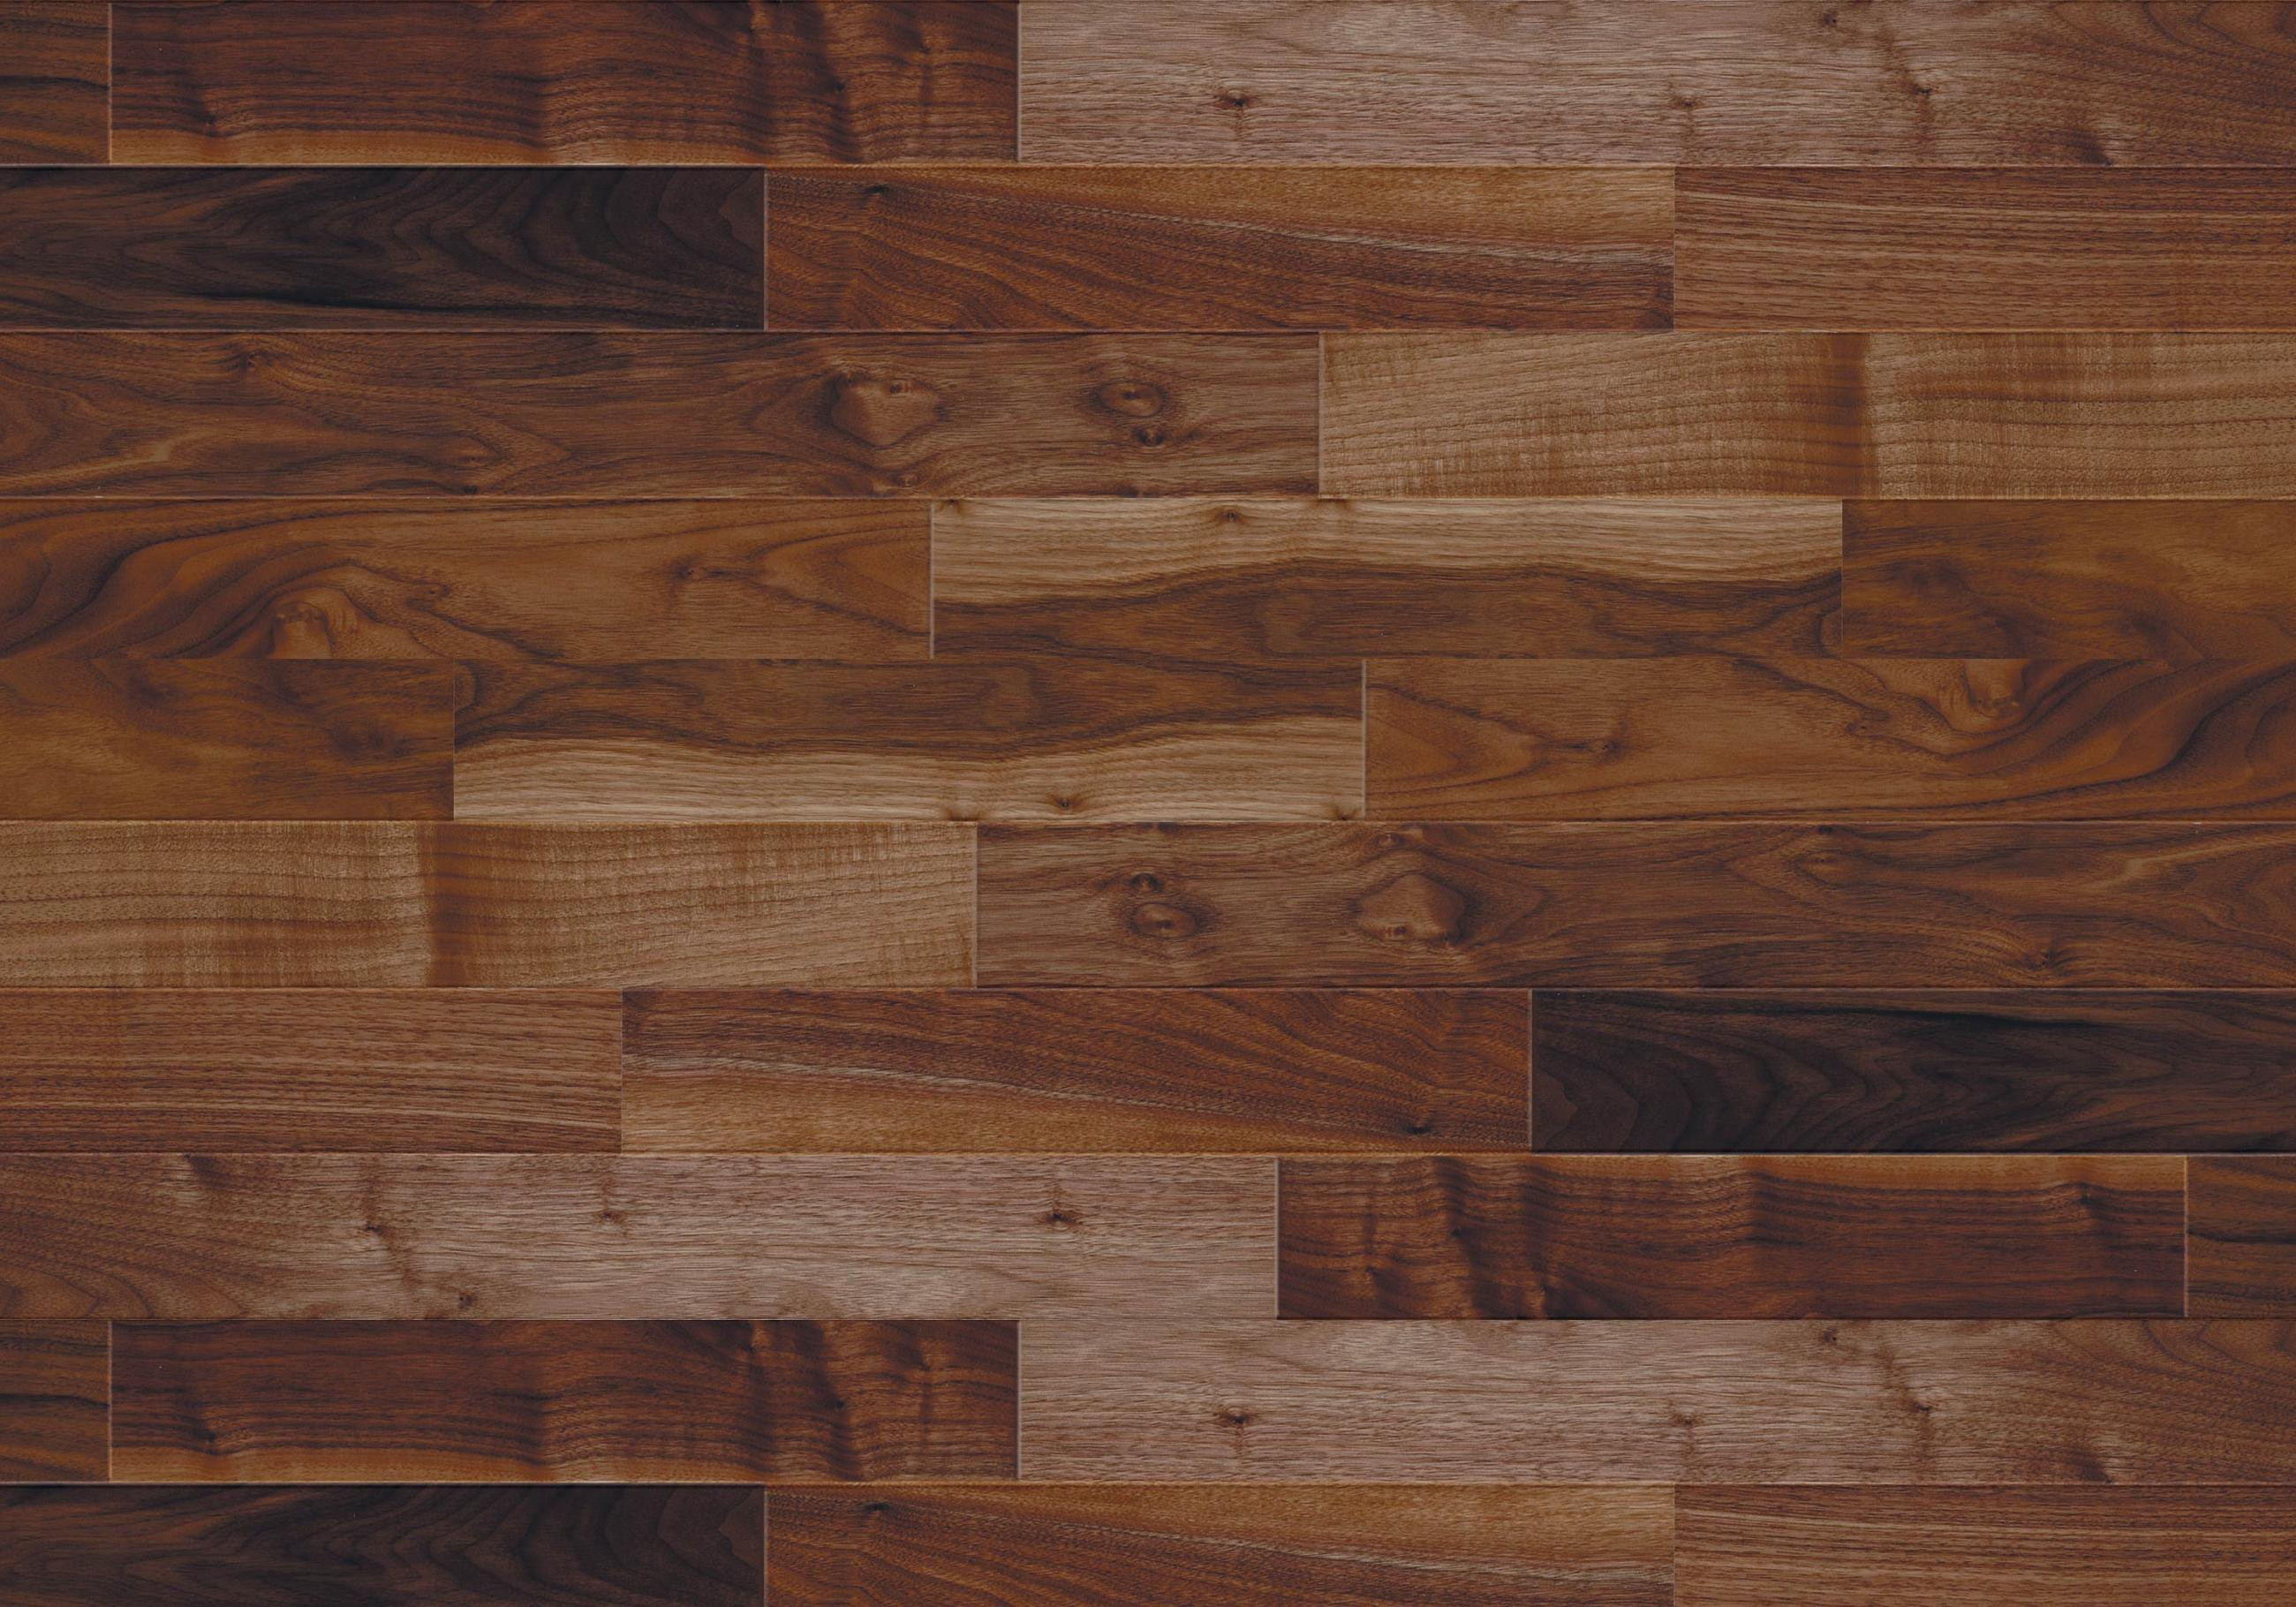 23 Unique Hardwood Flooring Cost Home Depot 2021 free download hardwood flooring cost home depot of breathtaking hardwood flooring pictures beautiful floors are here only pertaining to breathtaking hardwood flooring picture ottawa floor continental read